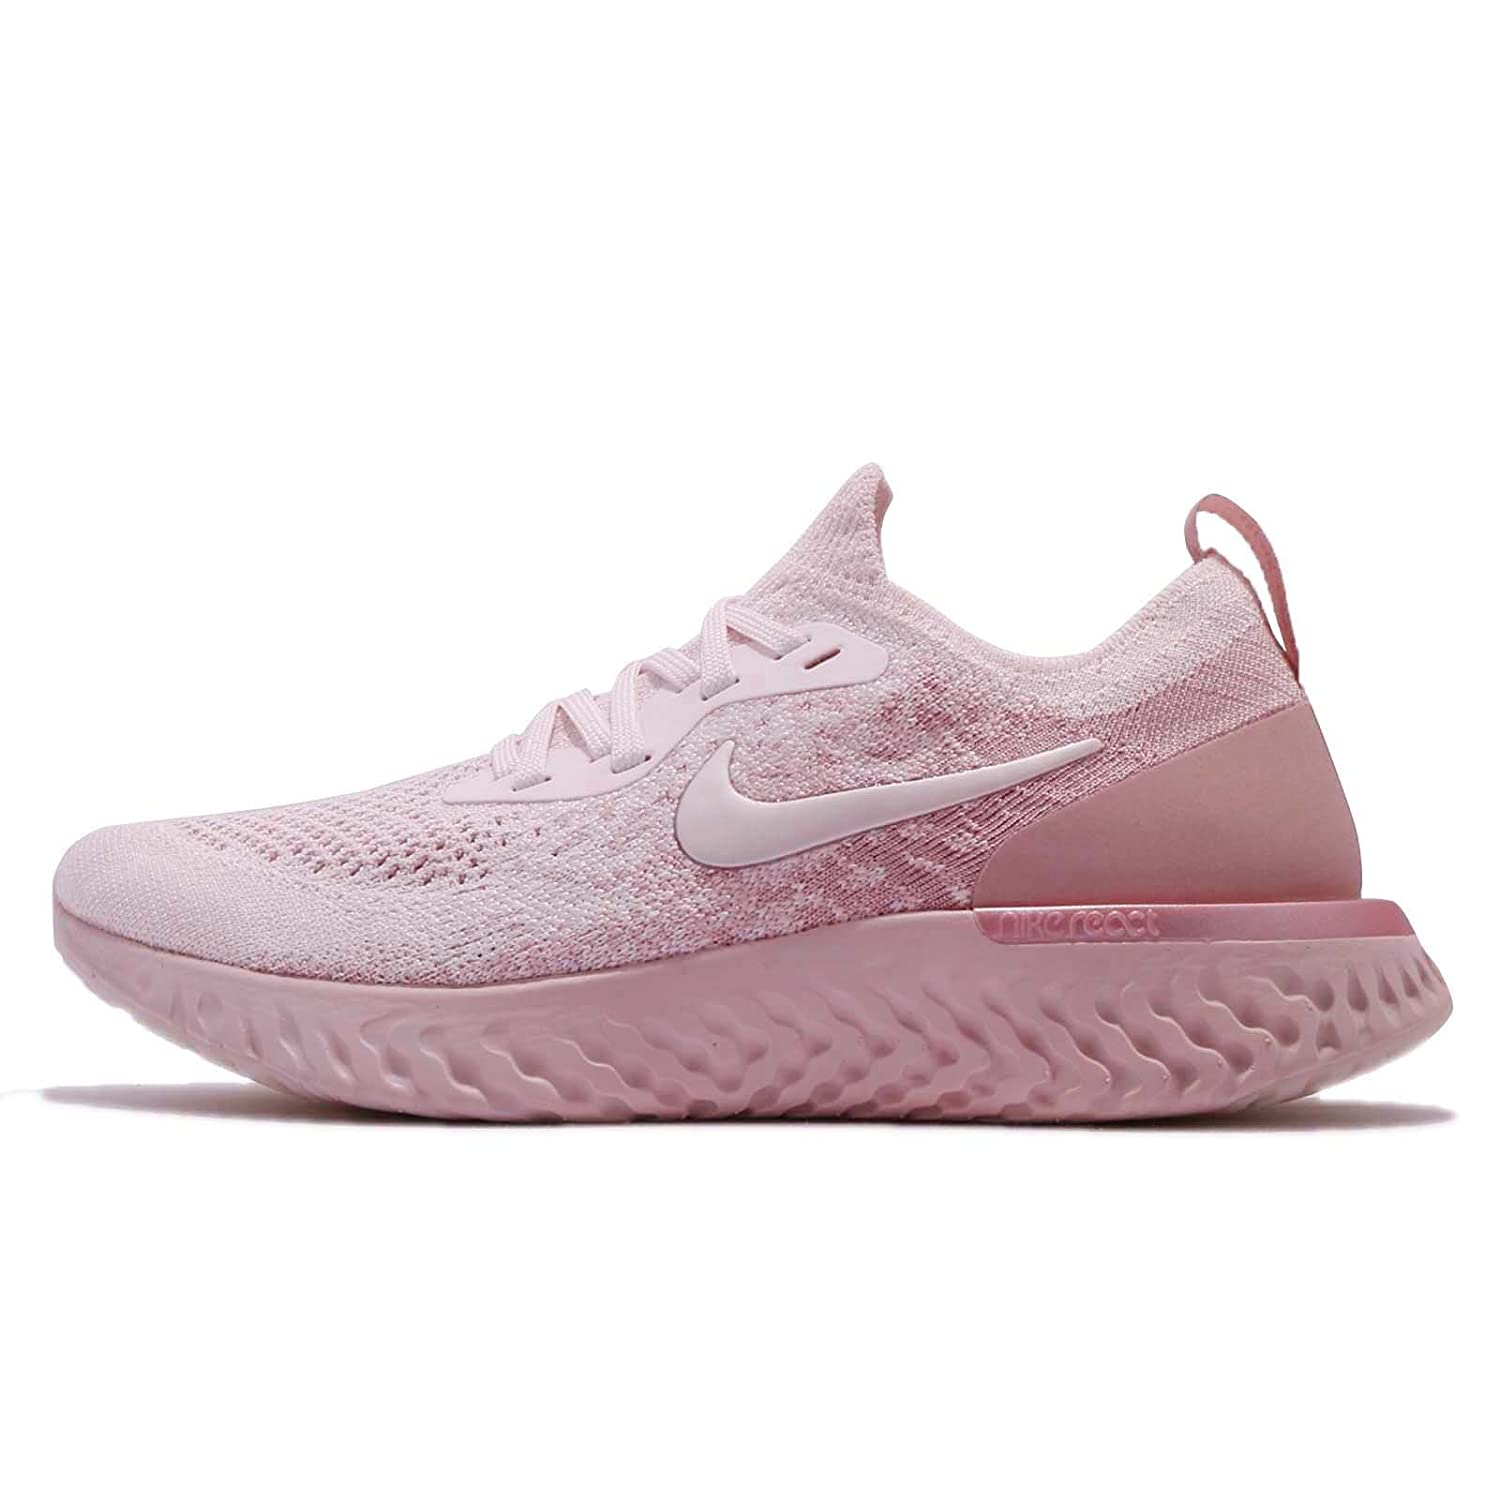 Mujeres Flyknit Nike Wmns Epic Reaccionar Flyknit Mujeres Pearl Pink  Perla 893c02